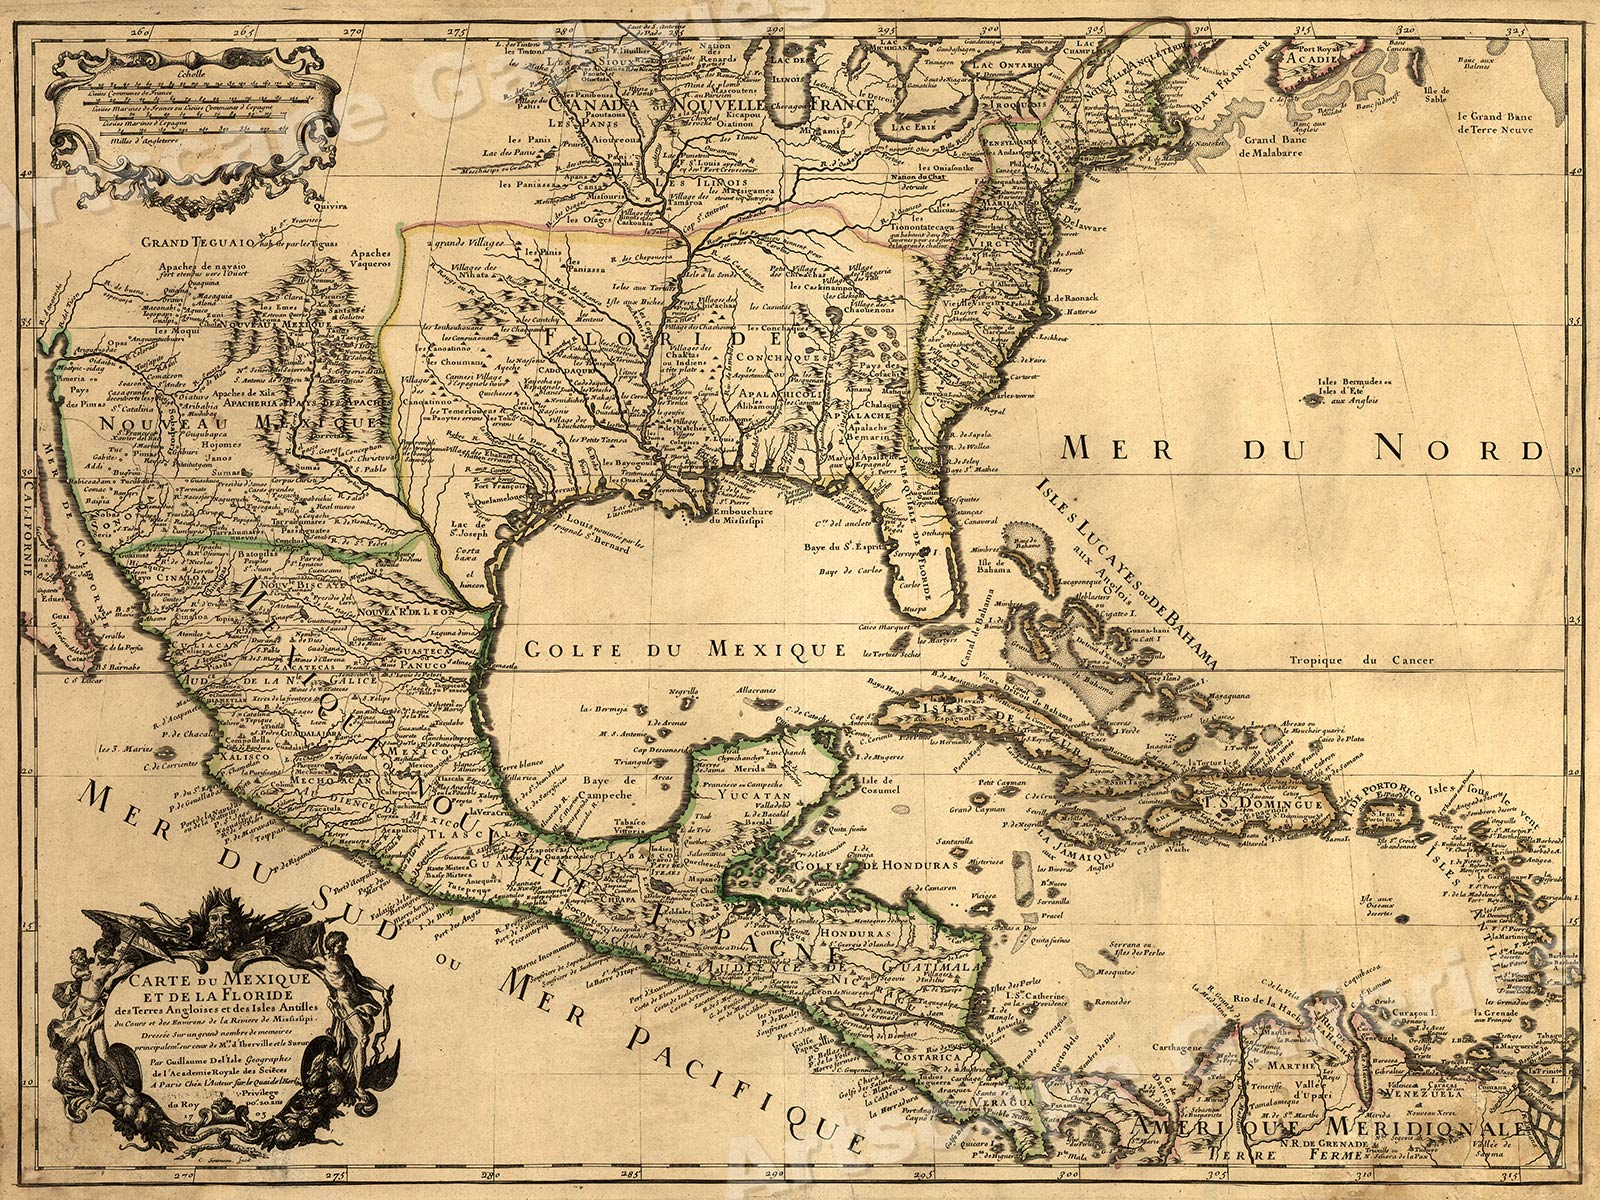 1700s New World Spanish Colonies Old Map - 20x28 | eBay